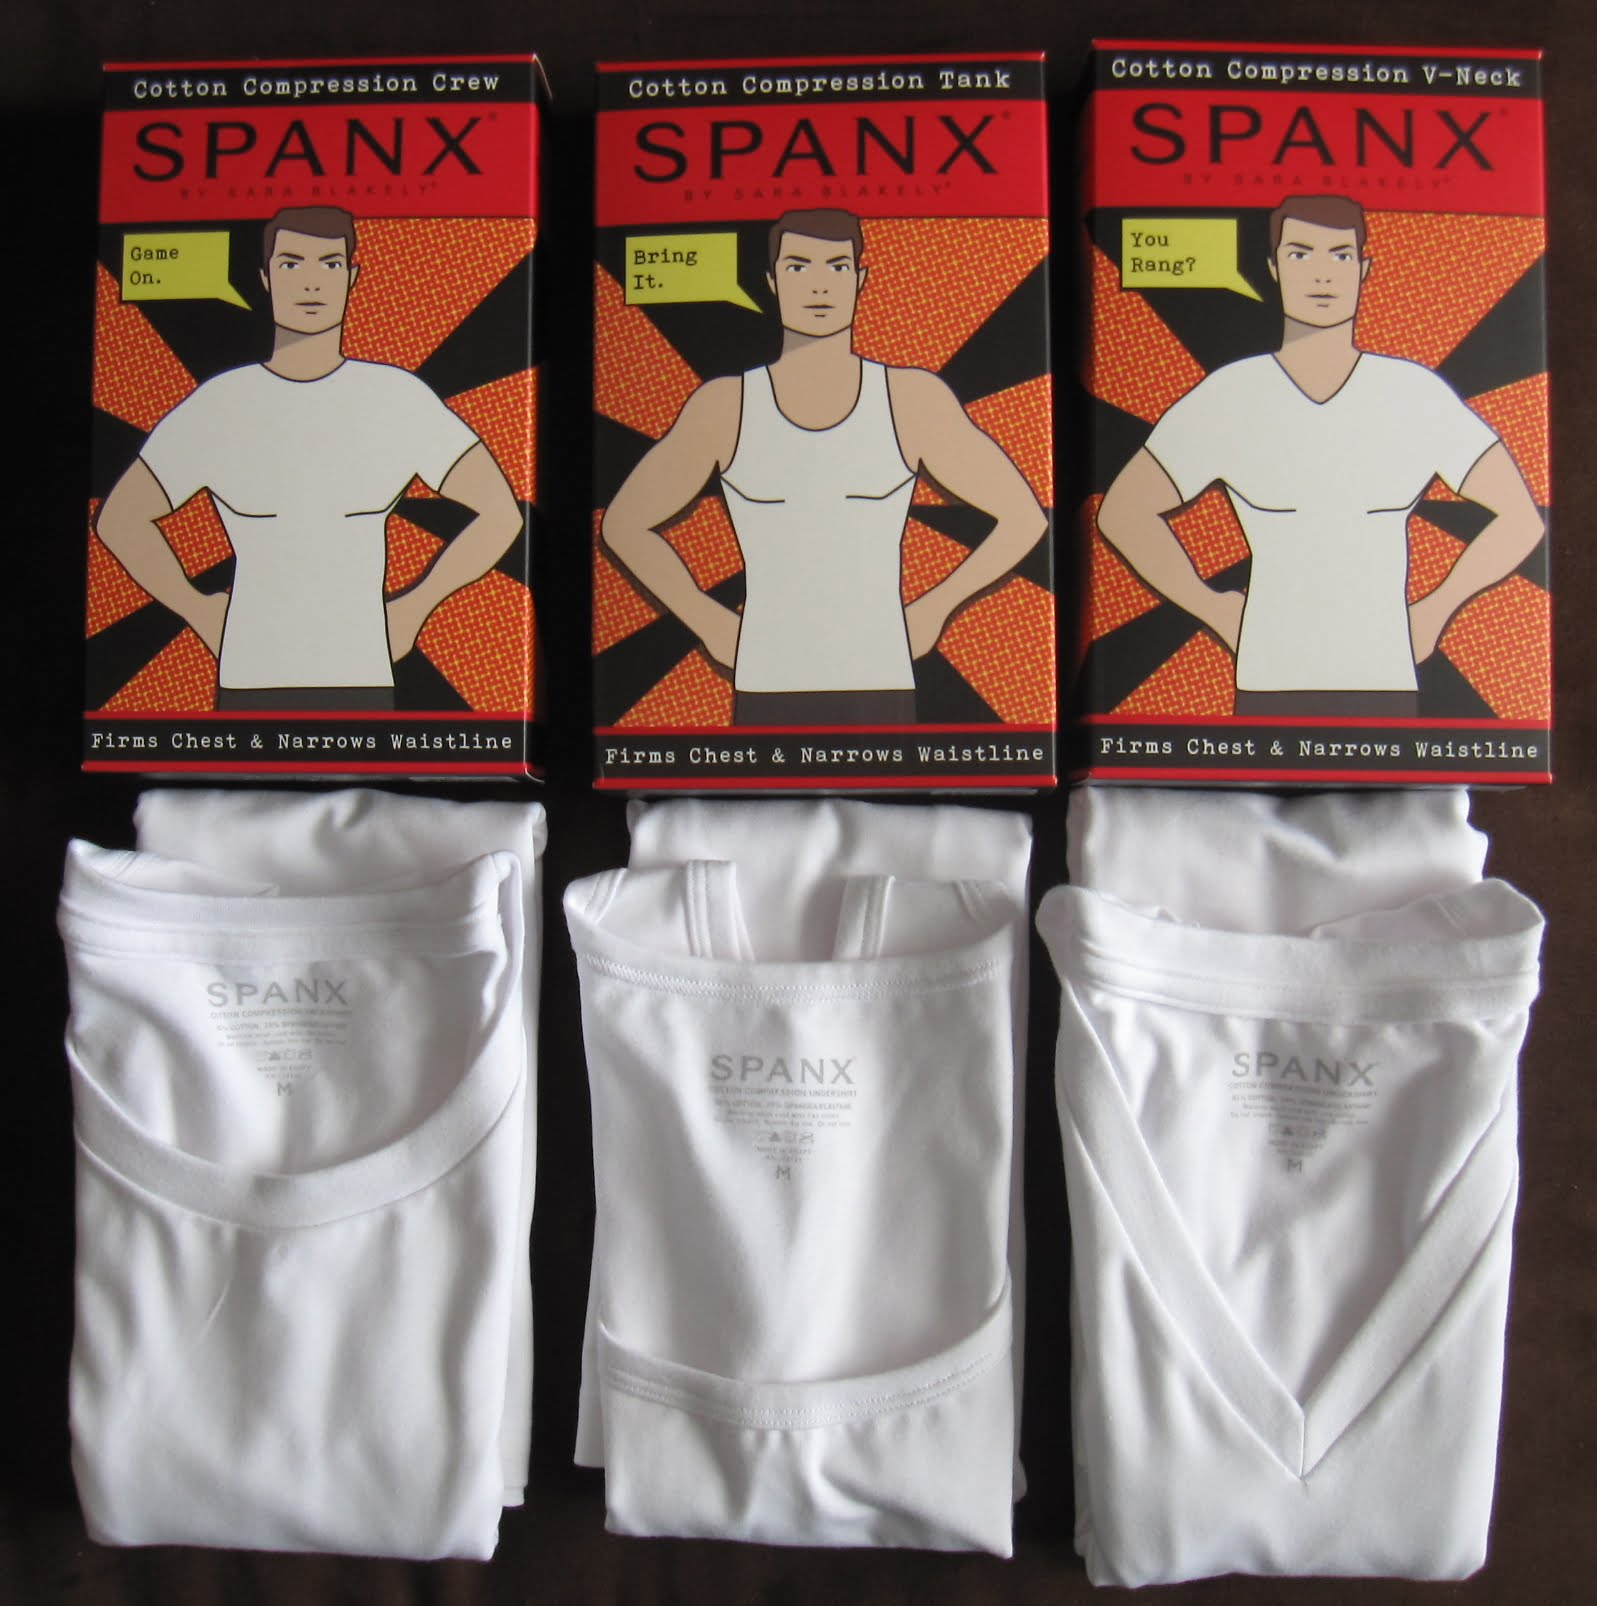 What Store Sells Spanx In Burbank California?